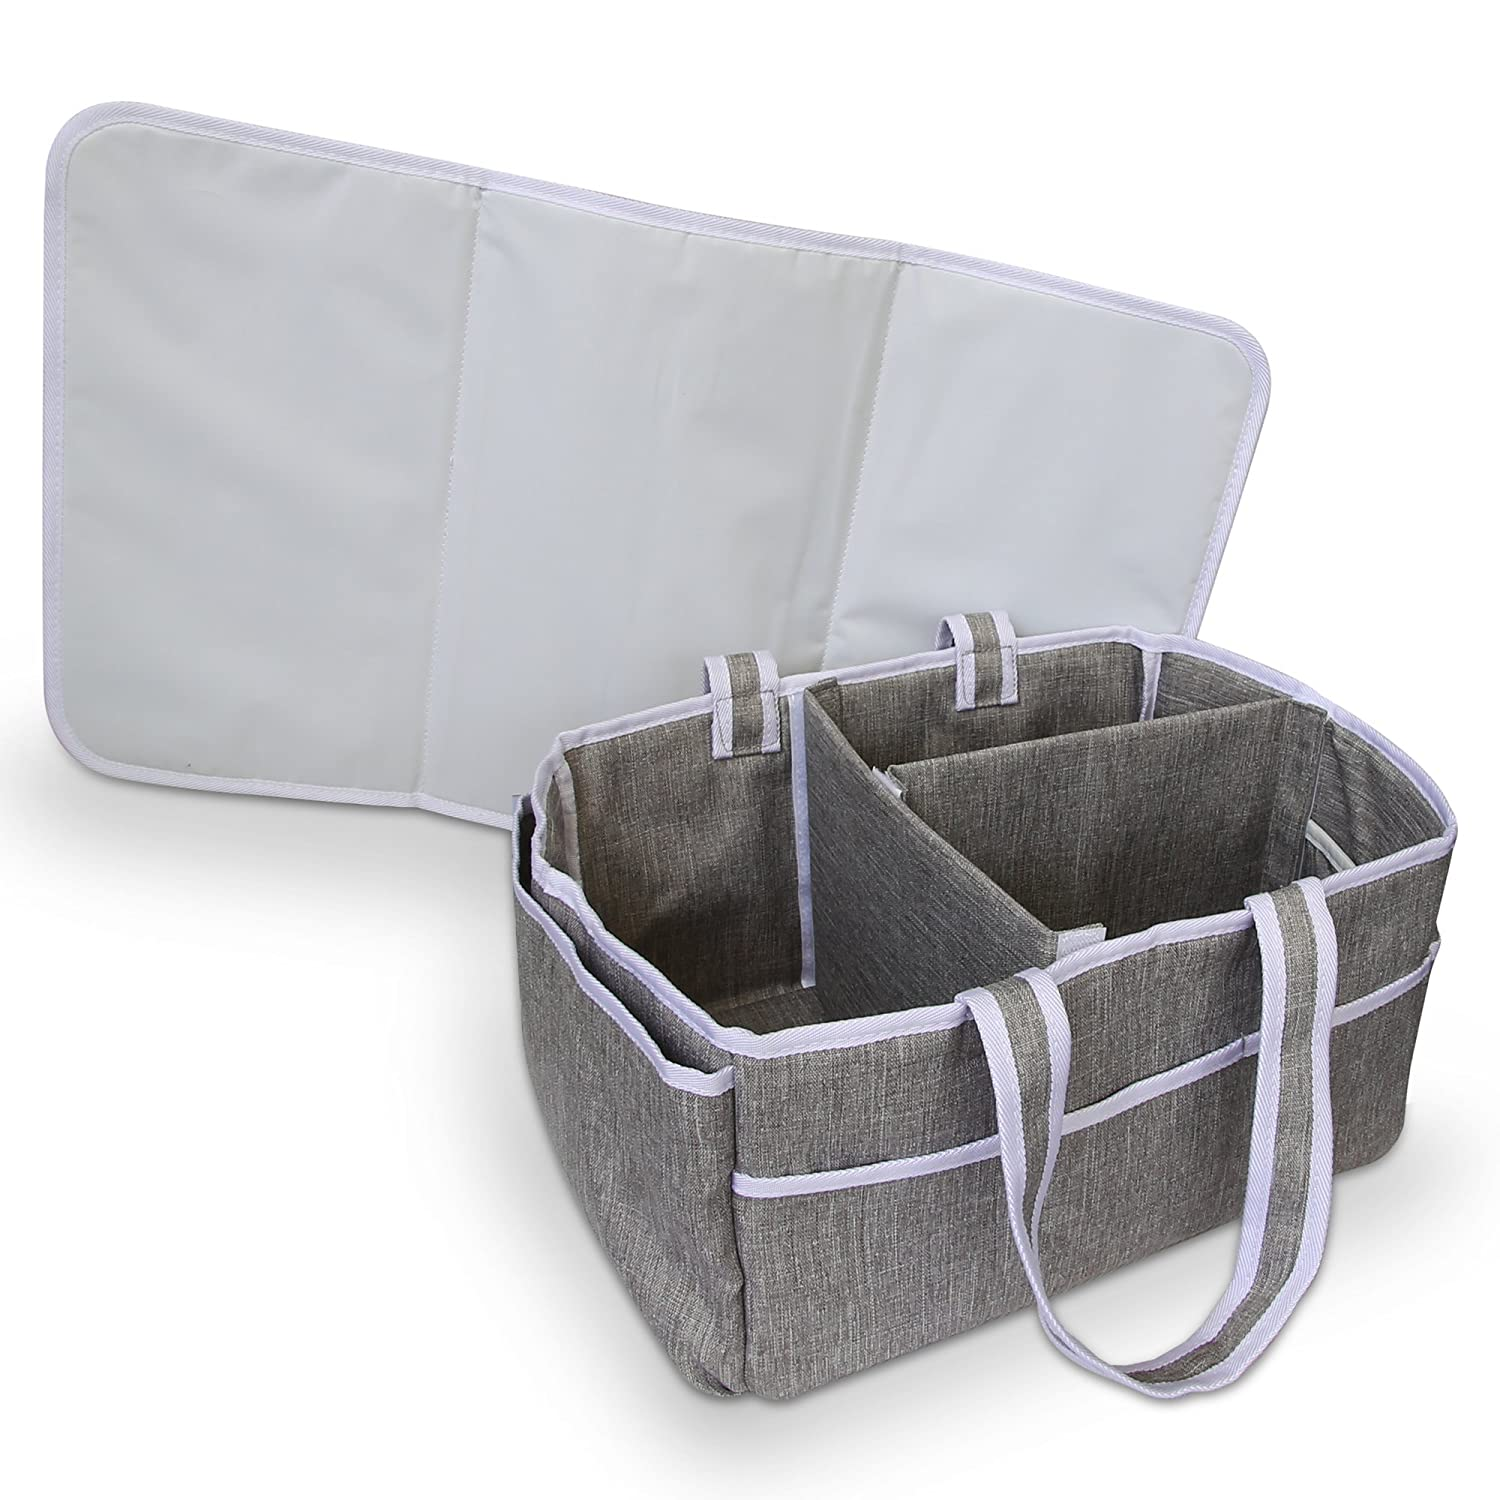 Bellizzi Diaper Caddy and Changing Mat for a Easy, Stress-free Baby Nappy Change - Portable Organizer for Your Changing Table and Nursery Virtual Stores